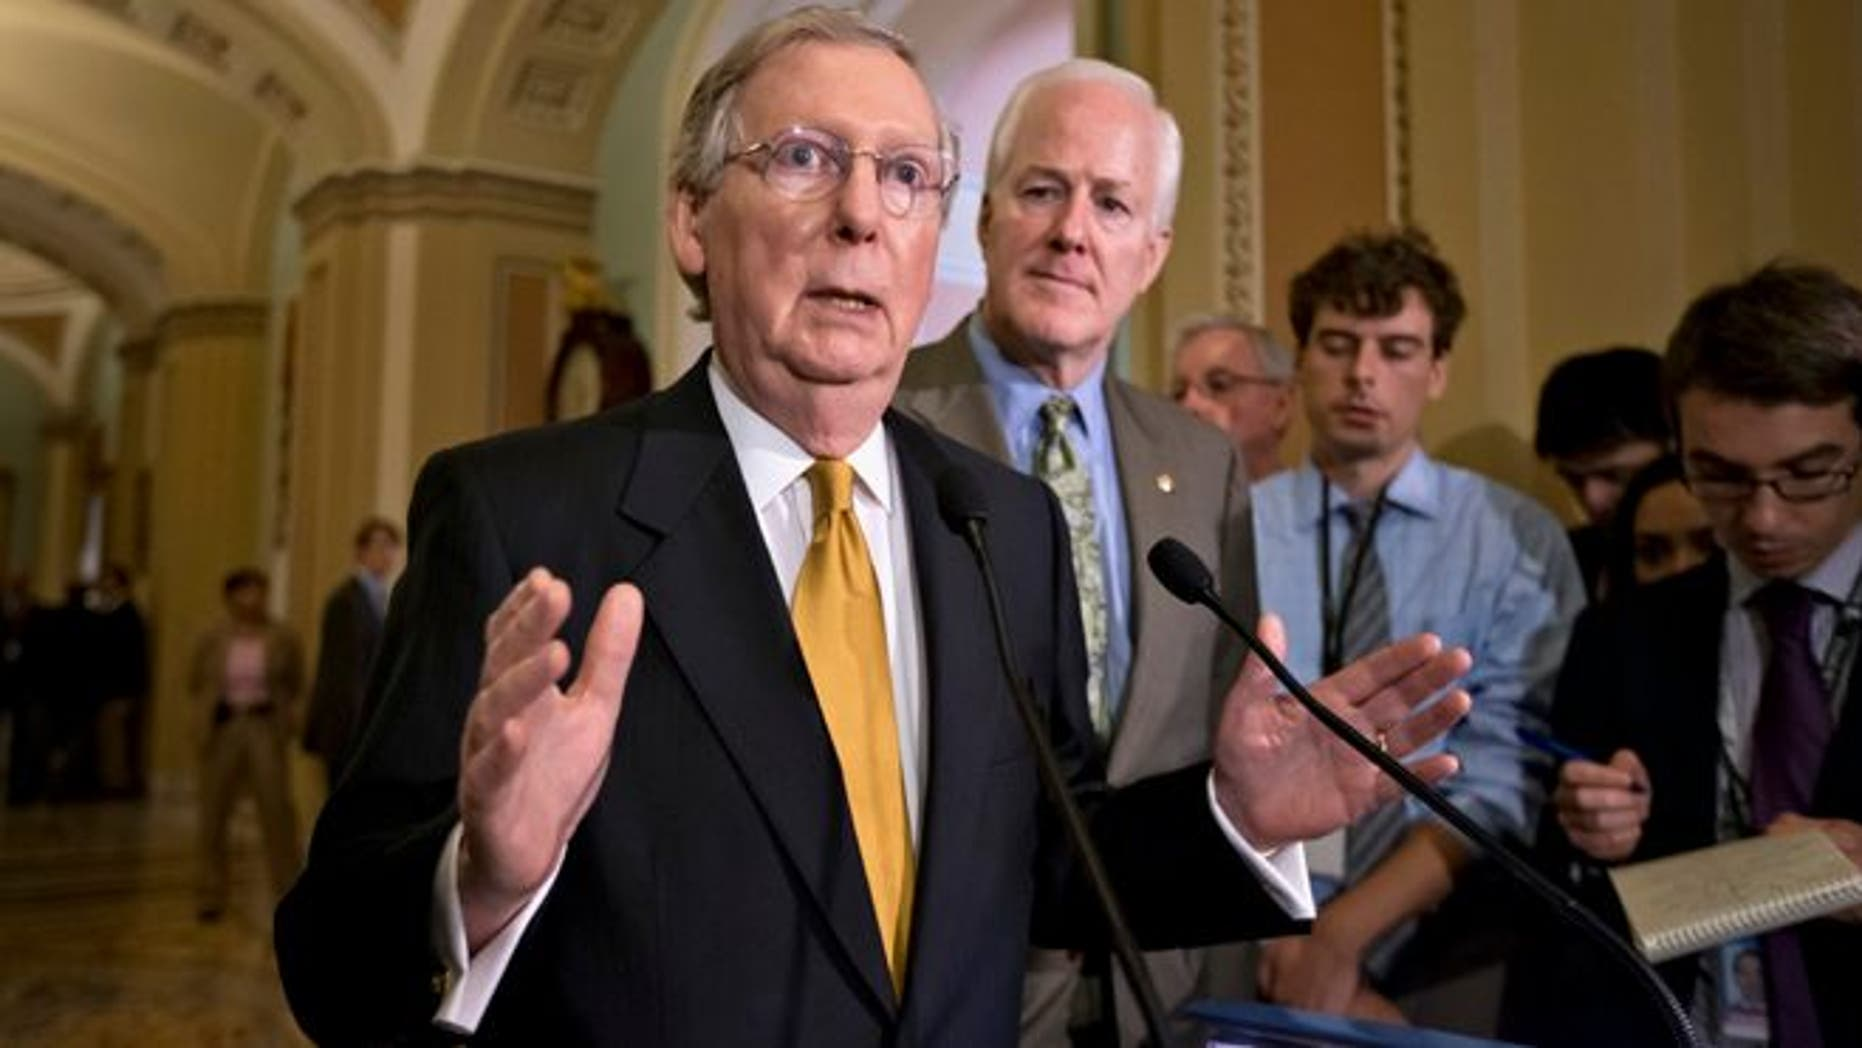 Senate Minority Leader Mitch McConnell of Ky., left, accompanied by Senate Minority Whip John Cornyn of Texas, gestures as he speaks with reporters on immigration, intelligence leaks and other issues following a Republican strategy session on Capitol Hill in Washington, Tuesday, June 11, 2013.  (AP Photo/J. Scott Applewhite)